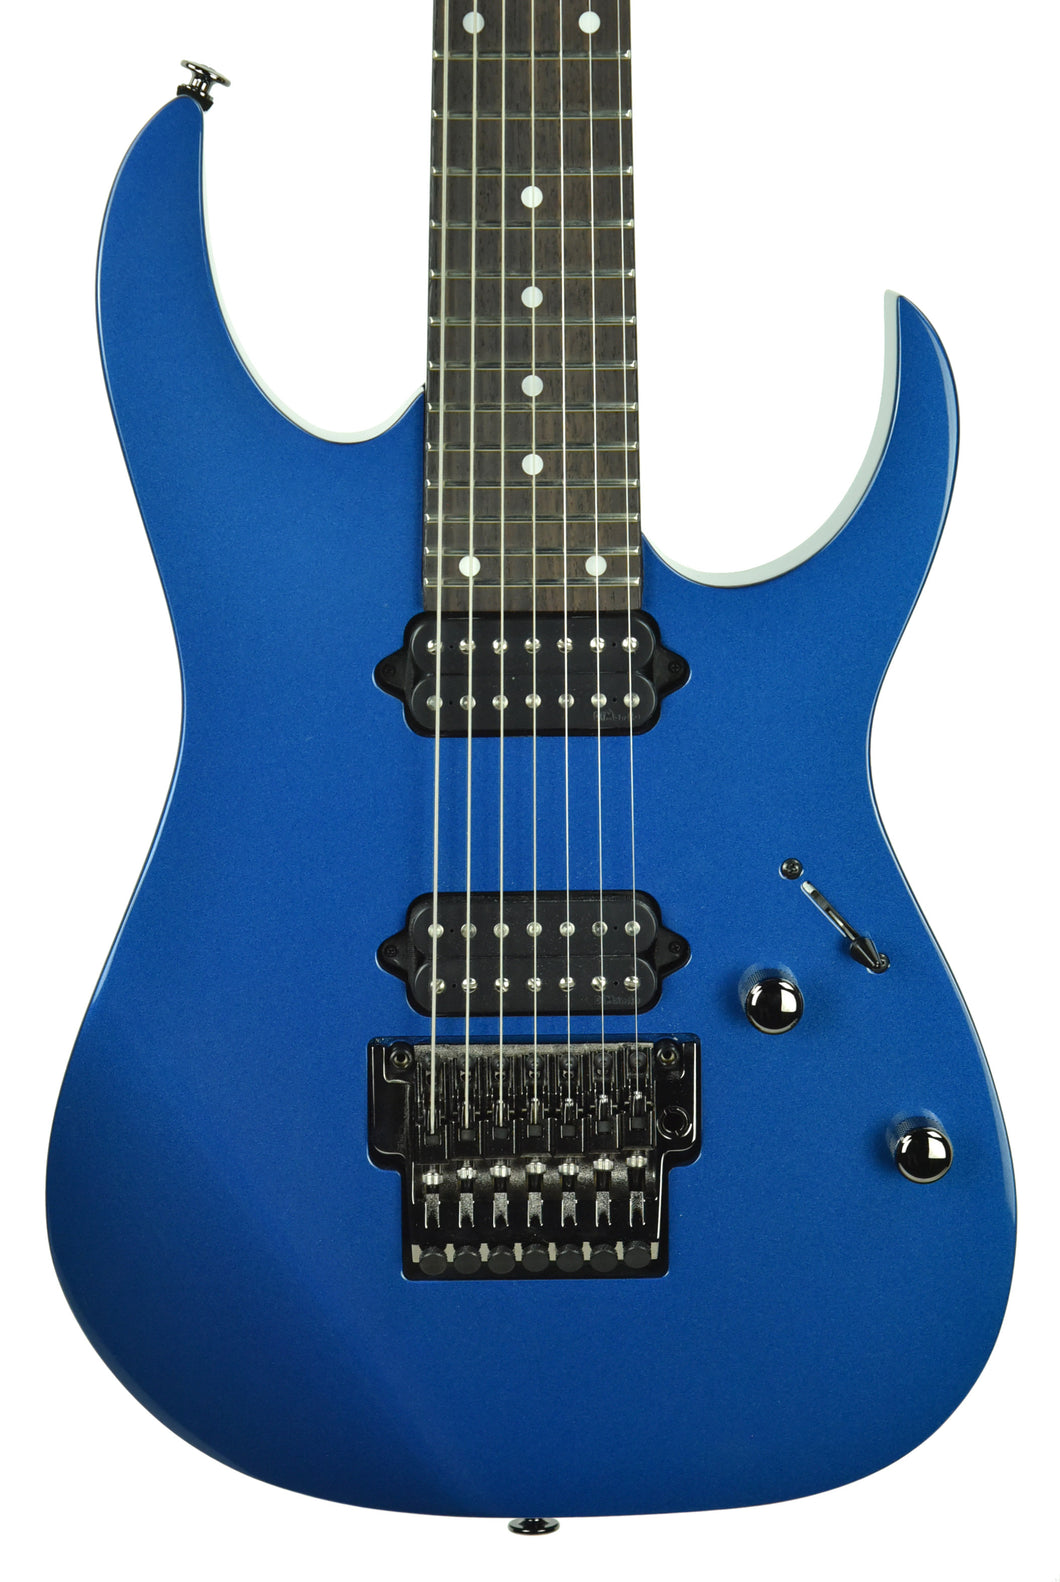 Used Ibanez Prestige RG752 7 String Electric Guitar in Cobalt Blue Metallic F1606491 - The Music Gallery